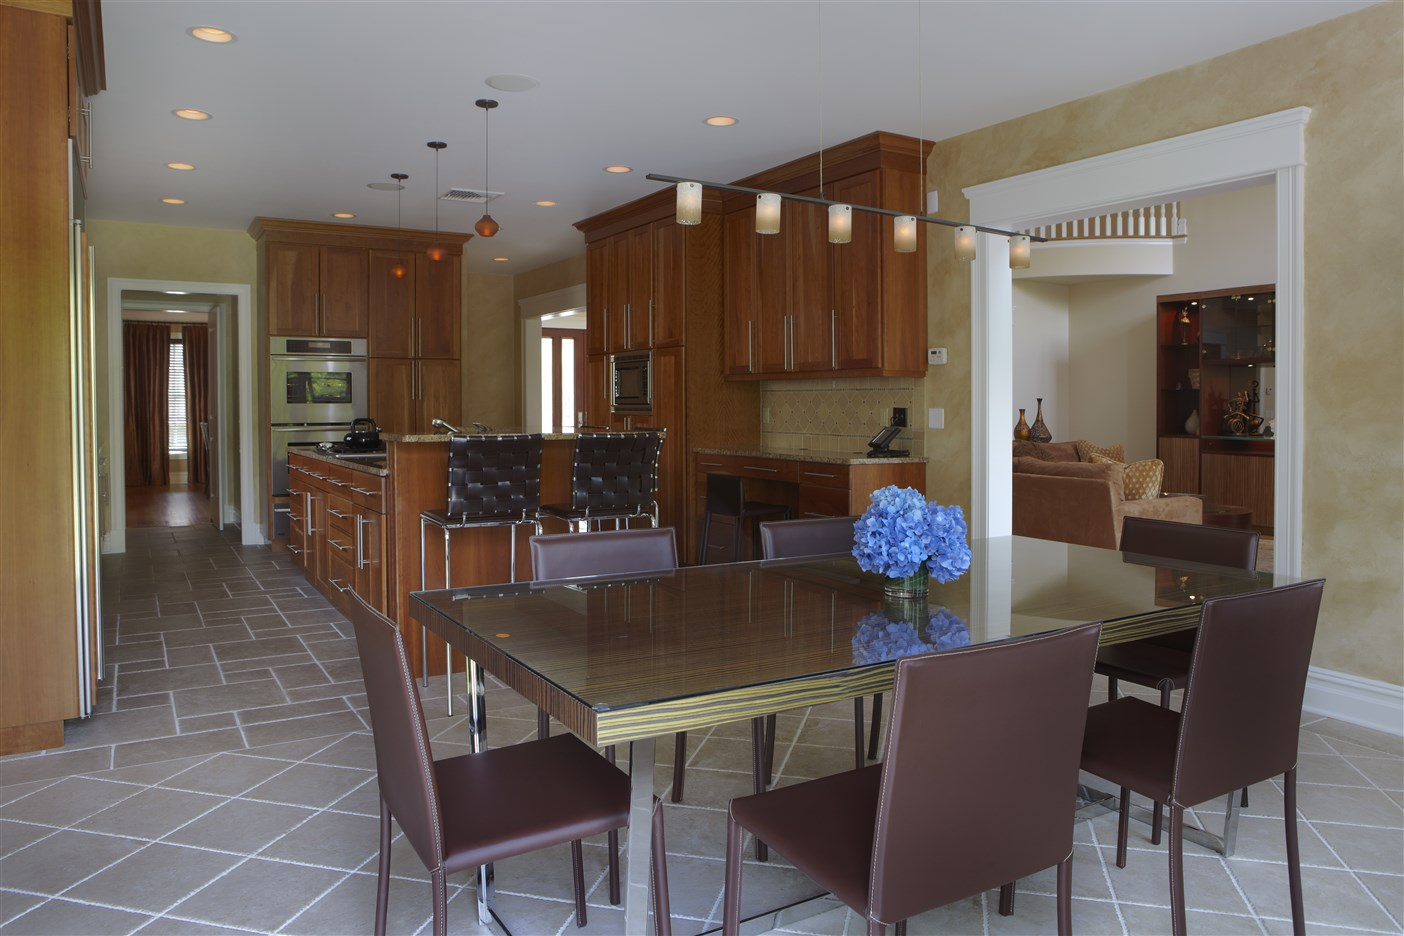 Kitchen and dining area with table for six